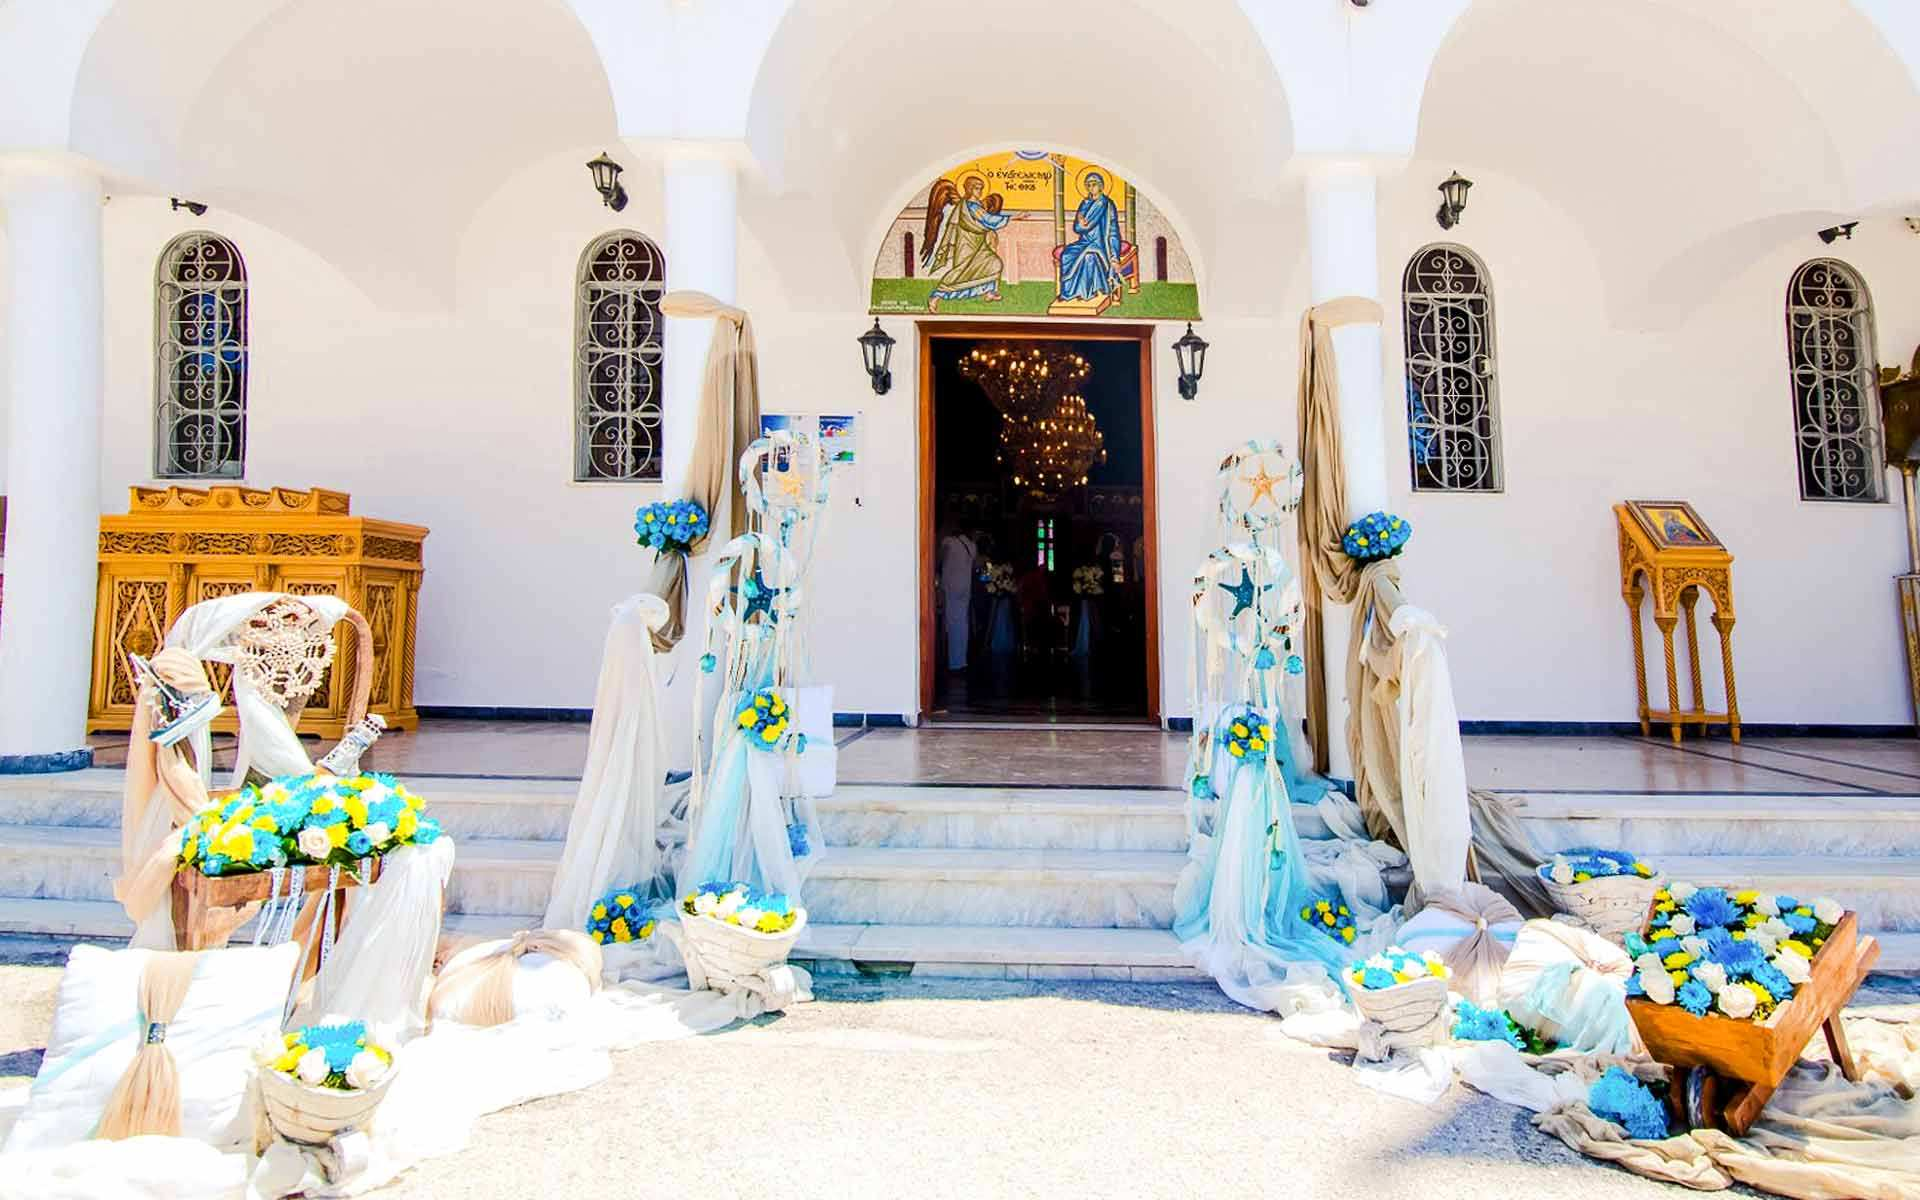 Entrance-To-Baptism-Decorated-In-Lavish-Flowers-And-Nautical-Fixtures